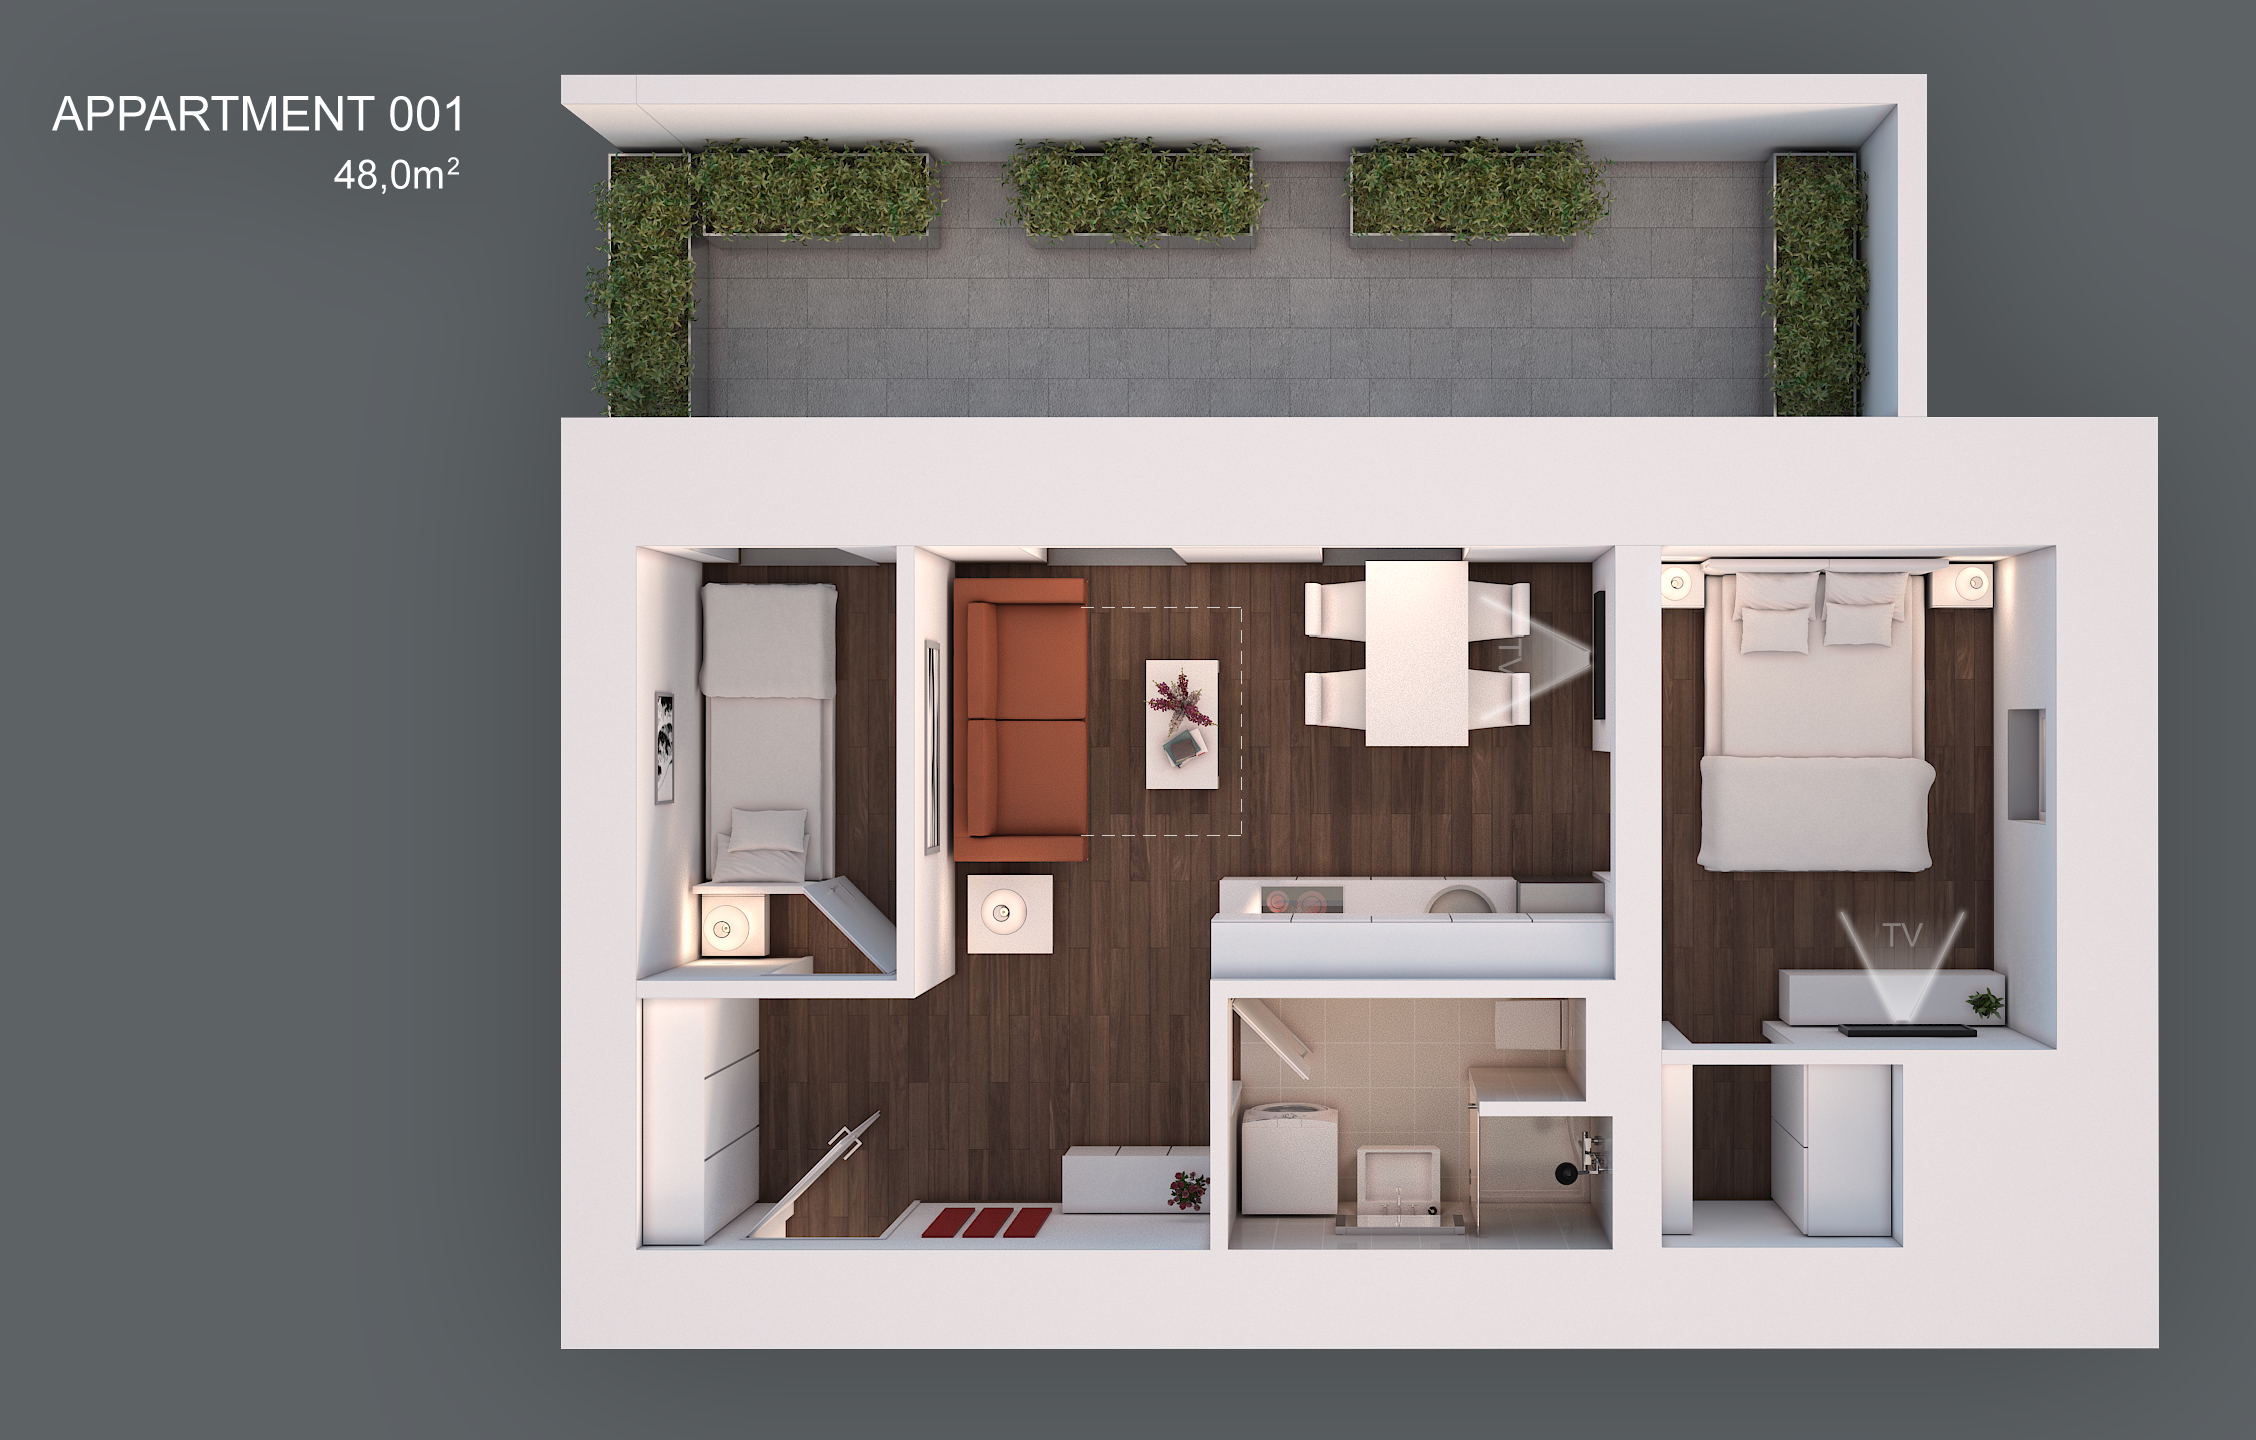 Apartment 001 layout